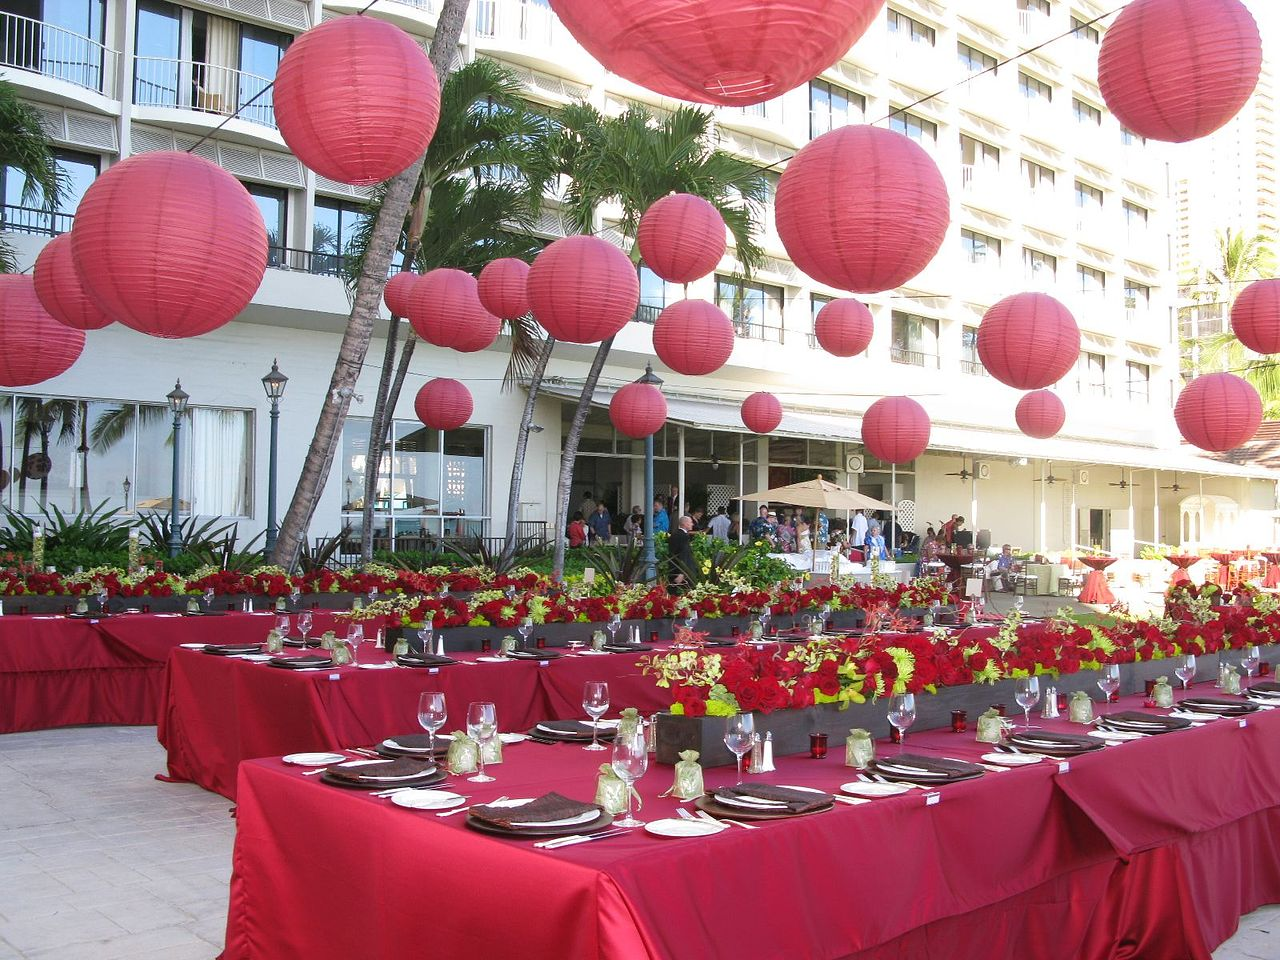 hemingways-red-lanterns-linens-floral-decor.jpg